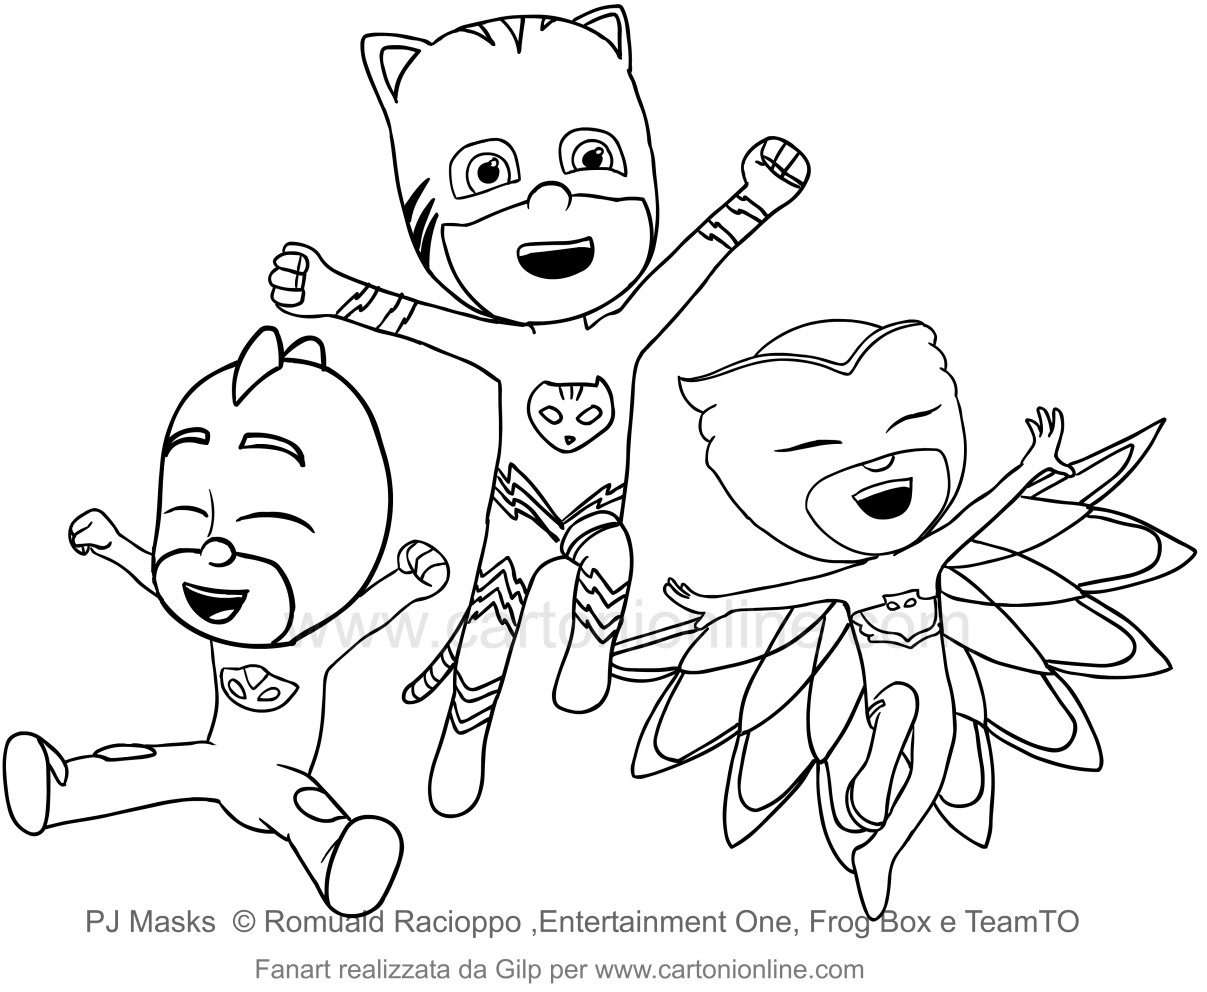 Photo pig mask coloring page images pj mask da colorare for Pj masks disegni da colorare